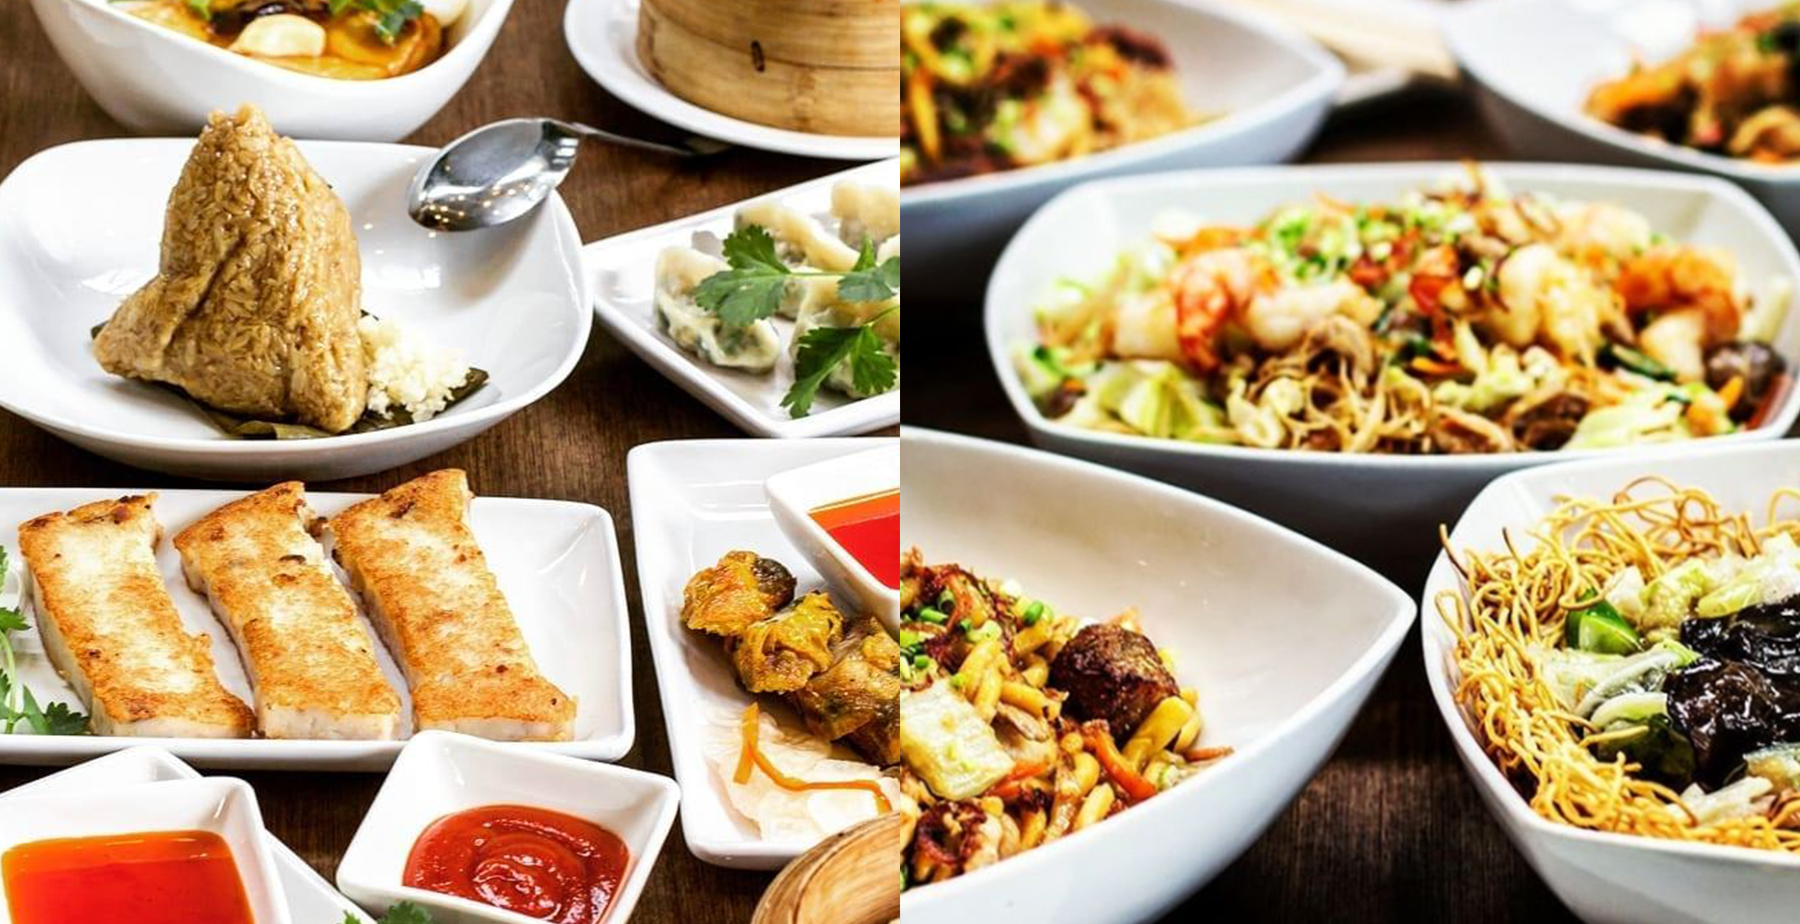 Chinese dishes from Mann Hann